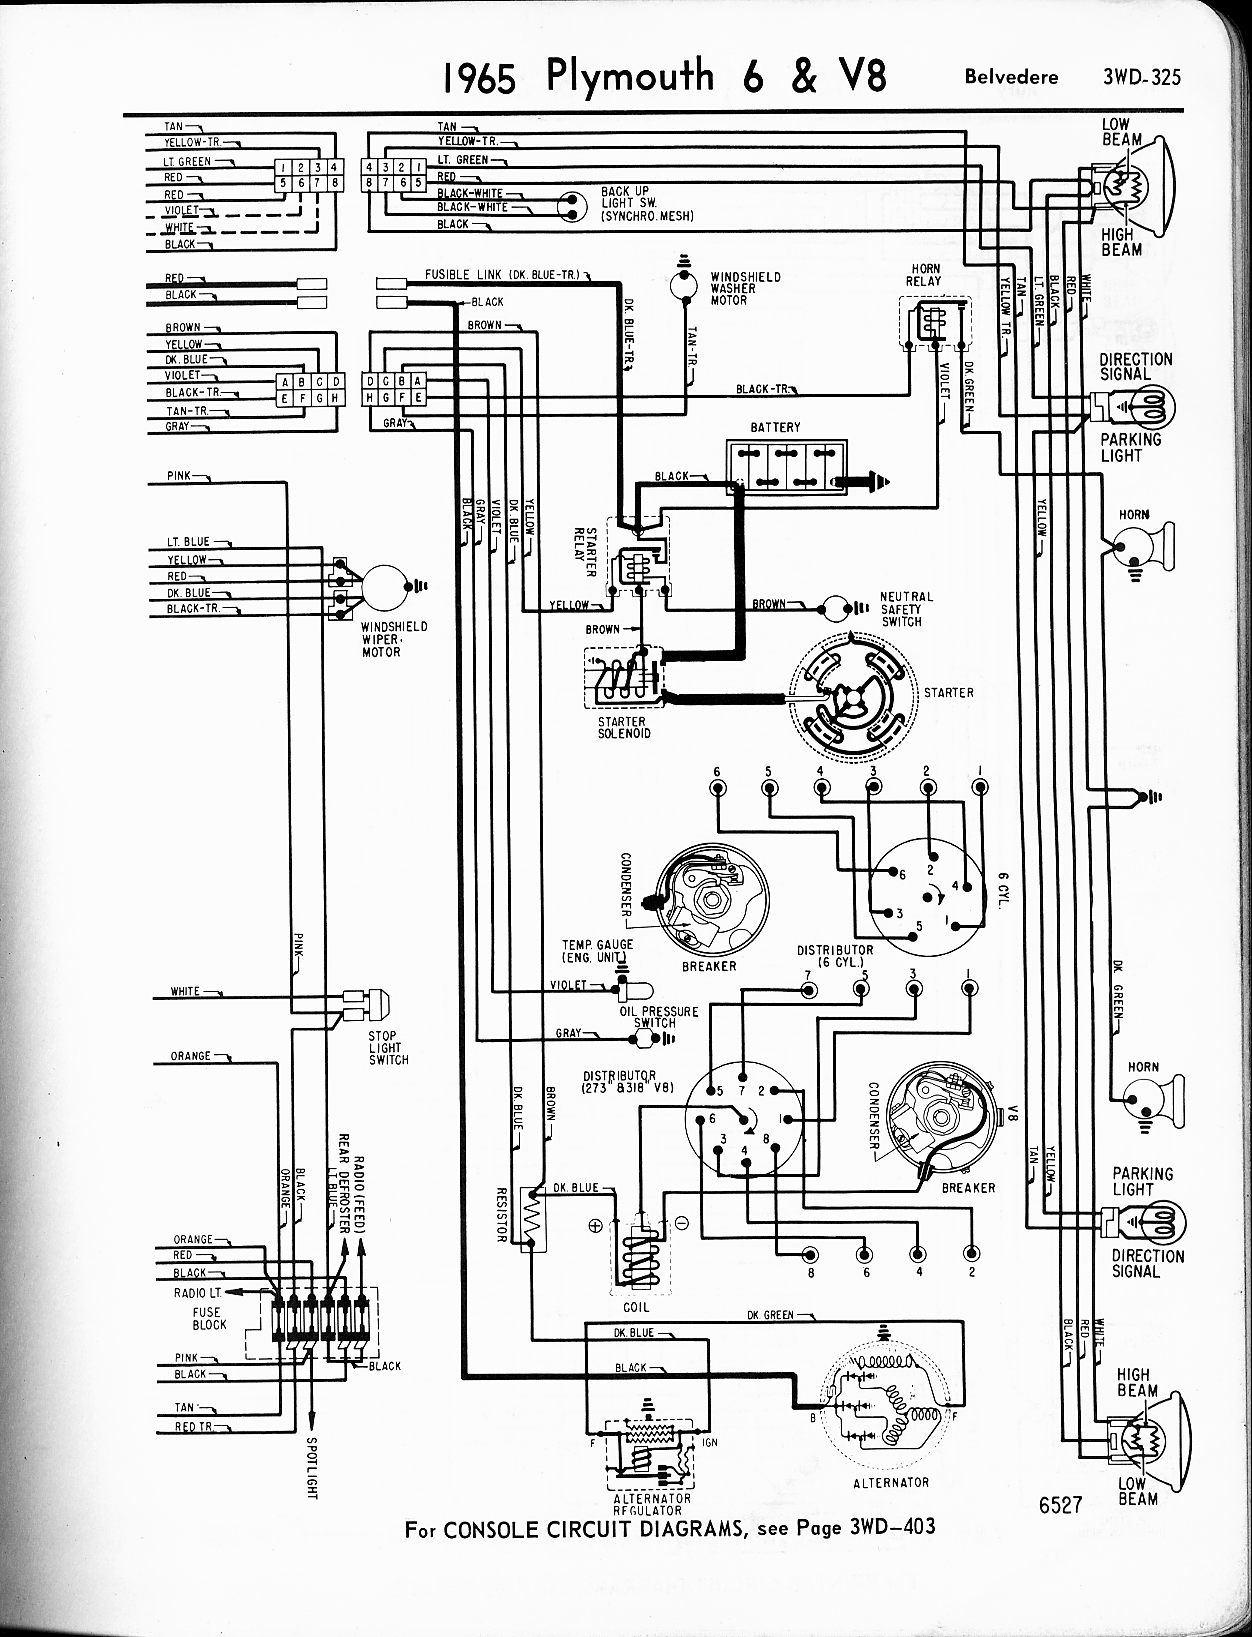 1973 dodge charger ignition wiring diagram 3 phase transformer 74 cuda get free image about